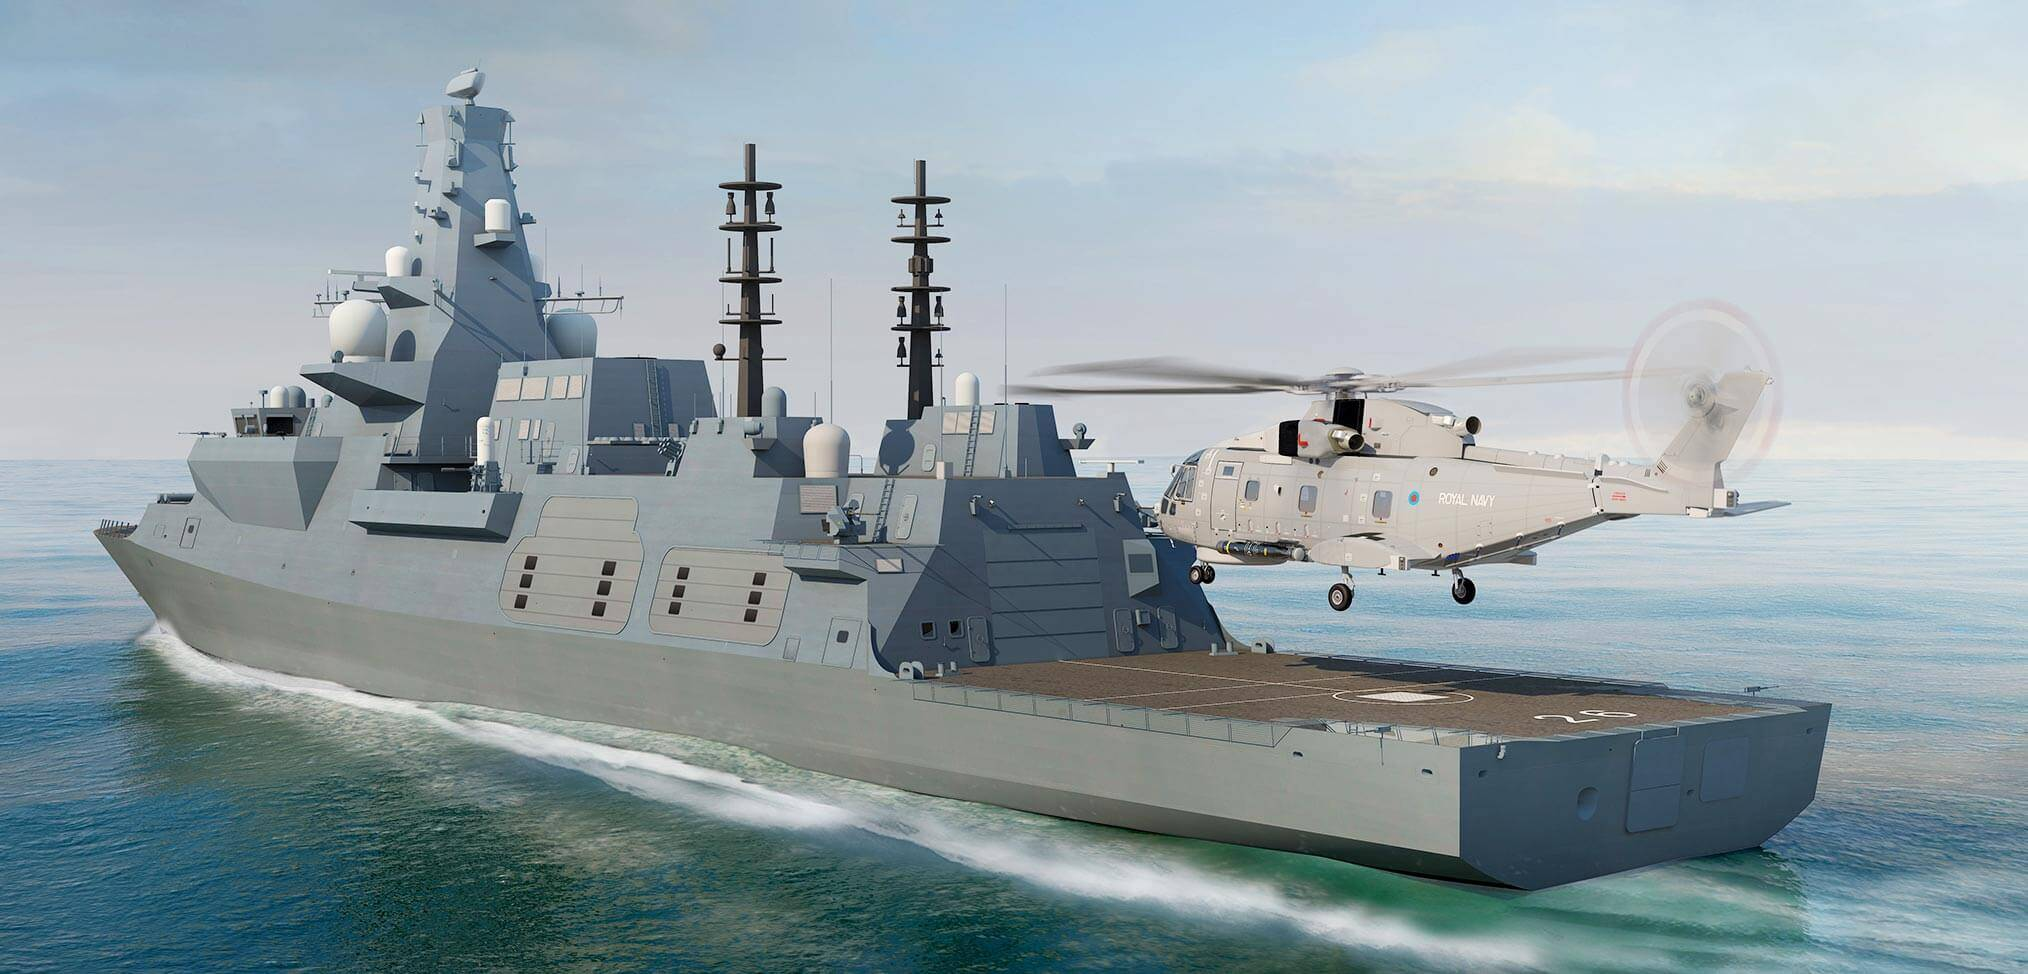 Will the Type 26 frigate deliver a punch commensurate with its price tag?